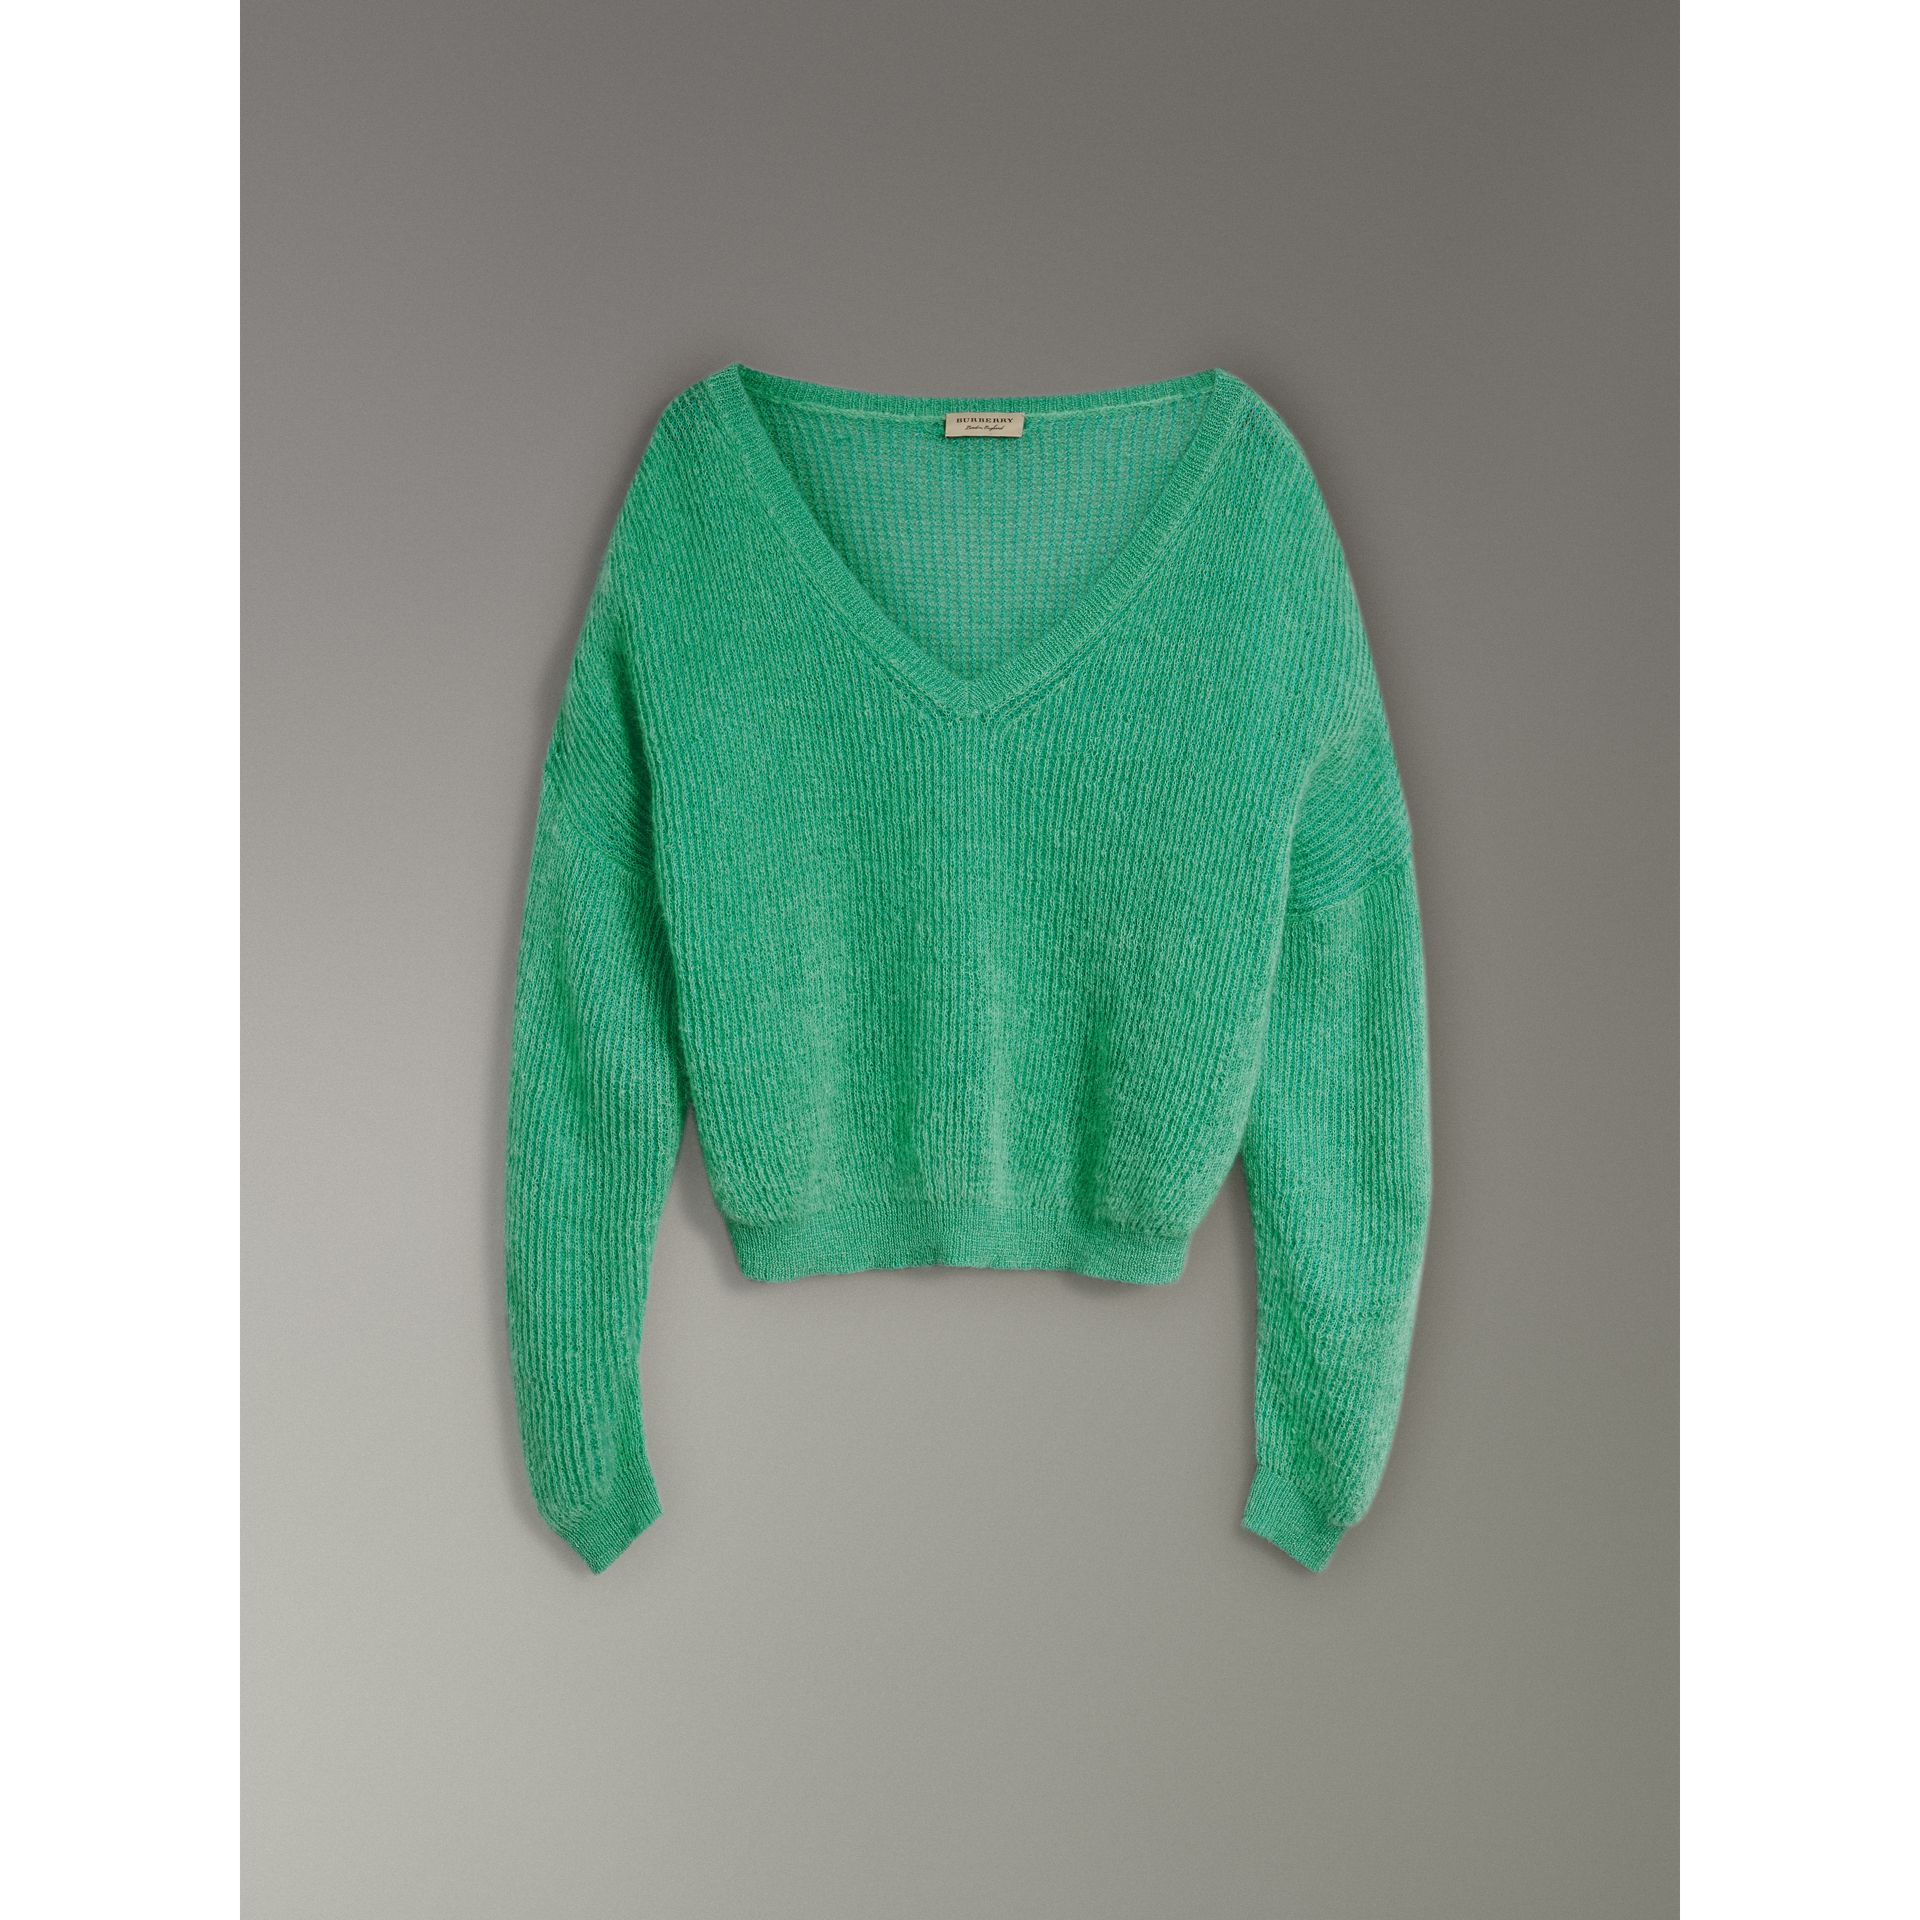 Rib Knit Mohair Silk Blend V-neck Sweater in Aqua Green - Women | Burberry Hong Kong - gallery image 3